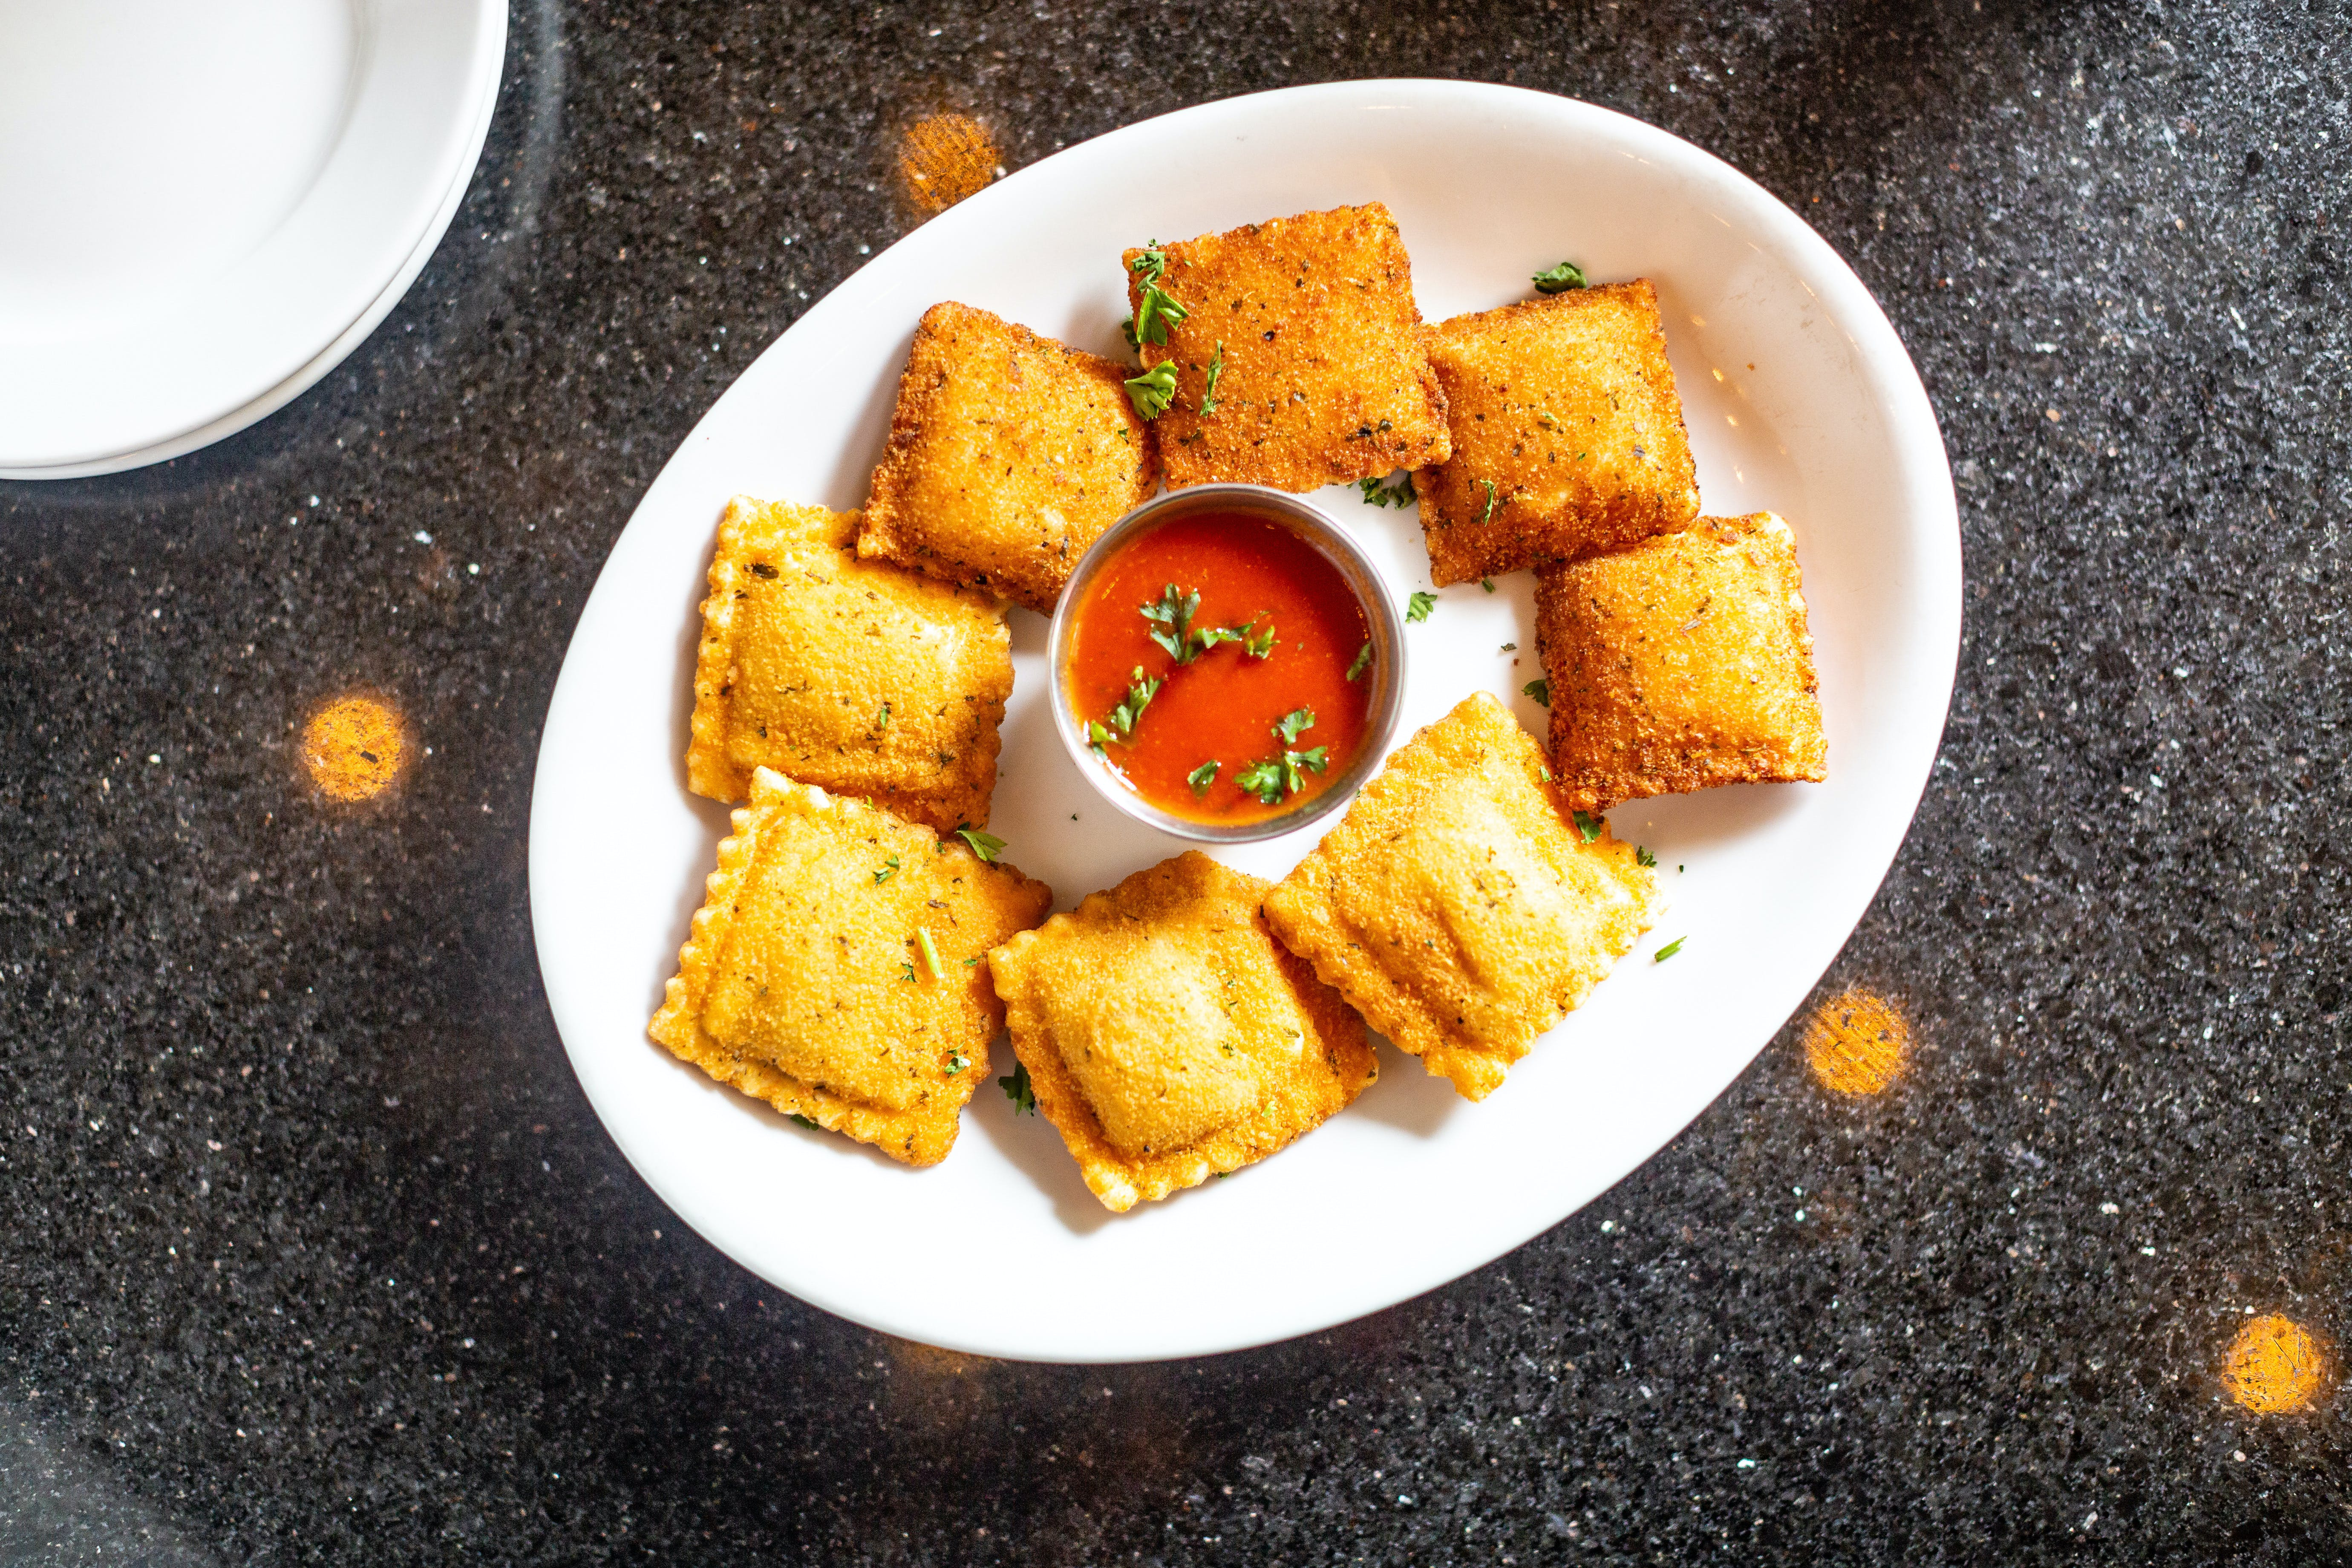 Toasted Ravioli (Appetizer) from The Mad Greek in Lawrence, KS